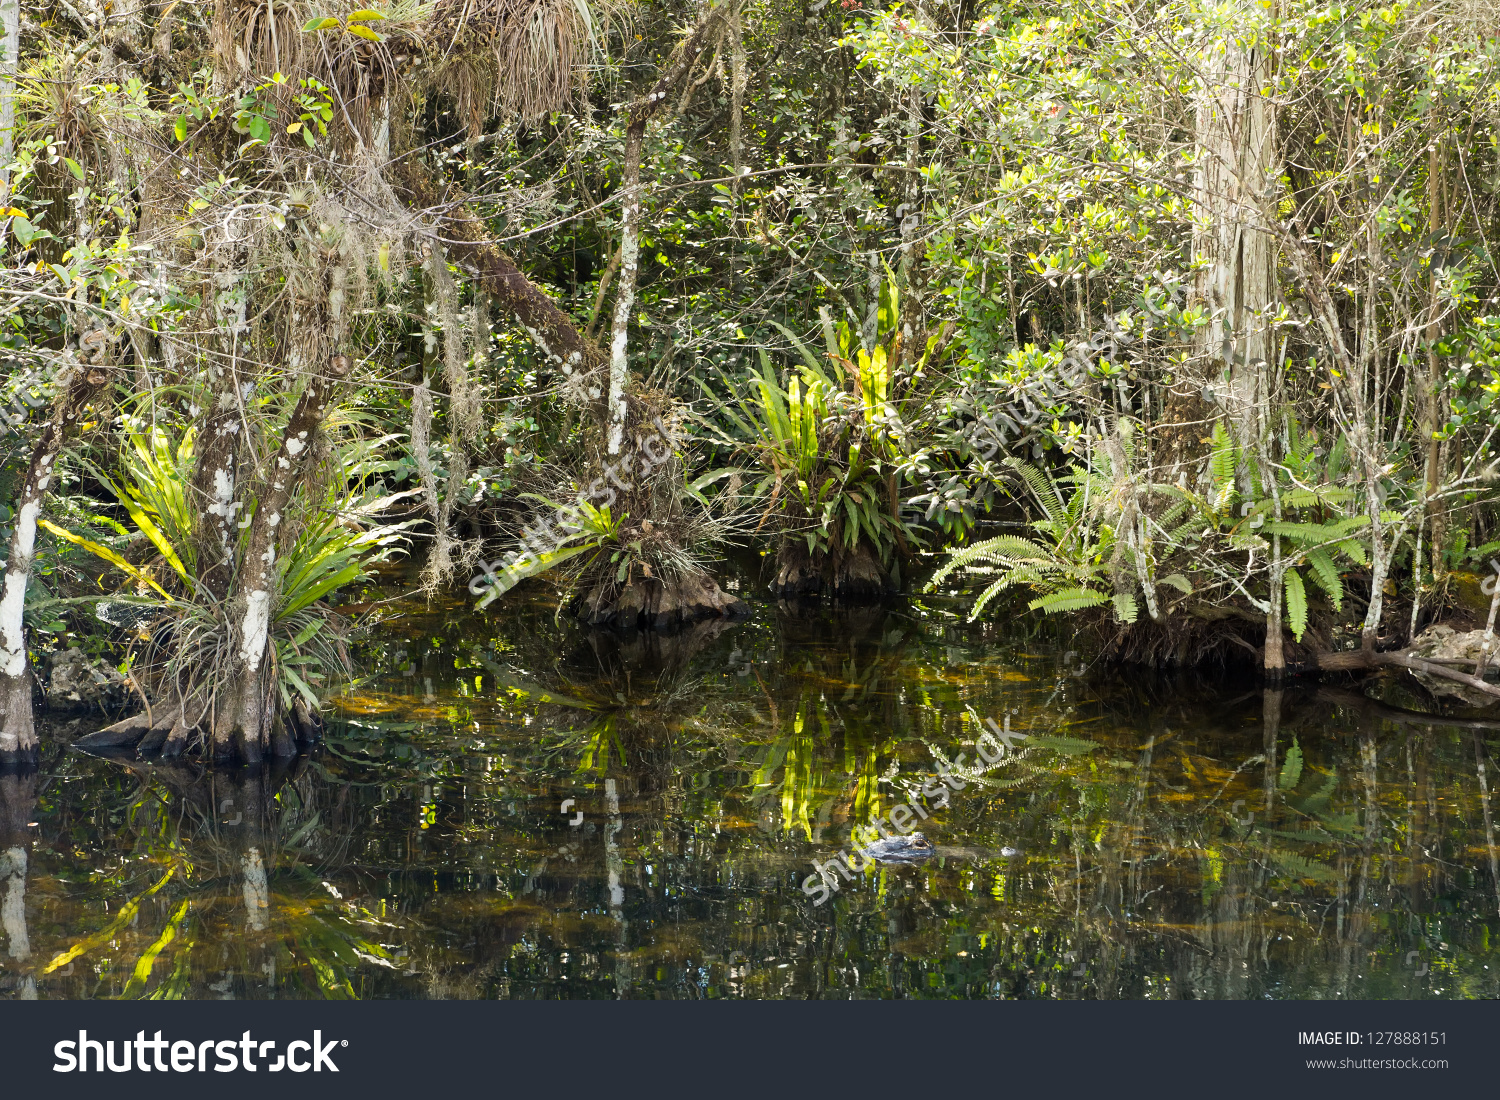 Everglades Big Cypress Swamp Overgrown Swamp Stock Photo 127888151.